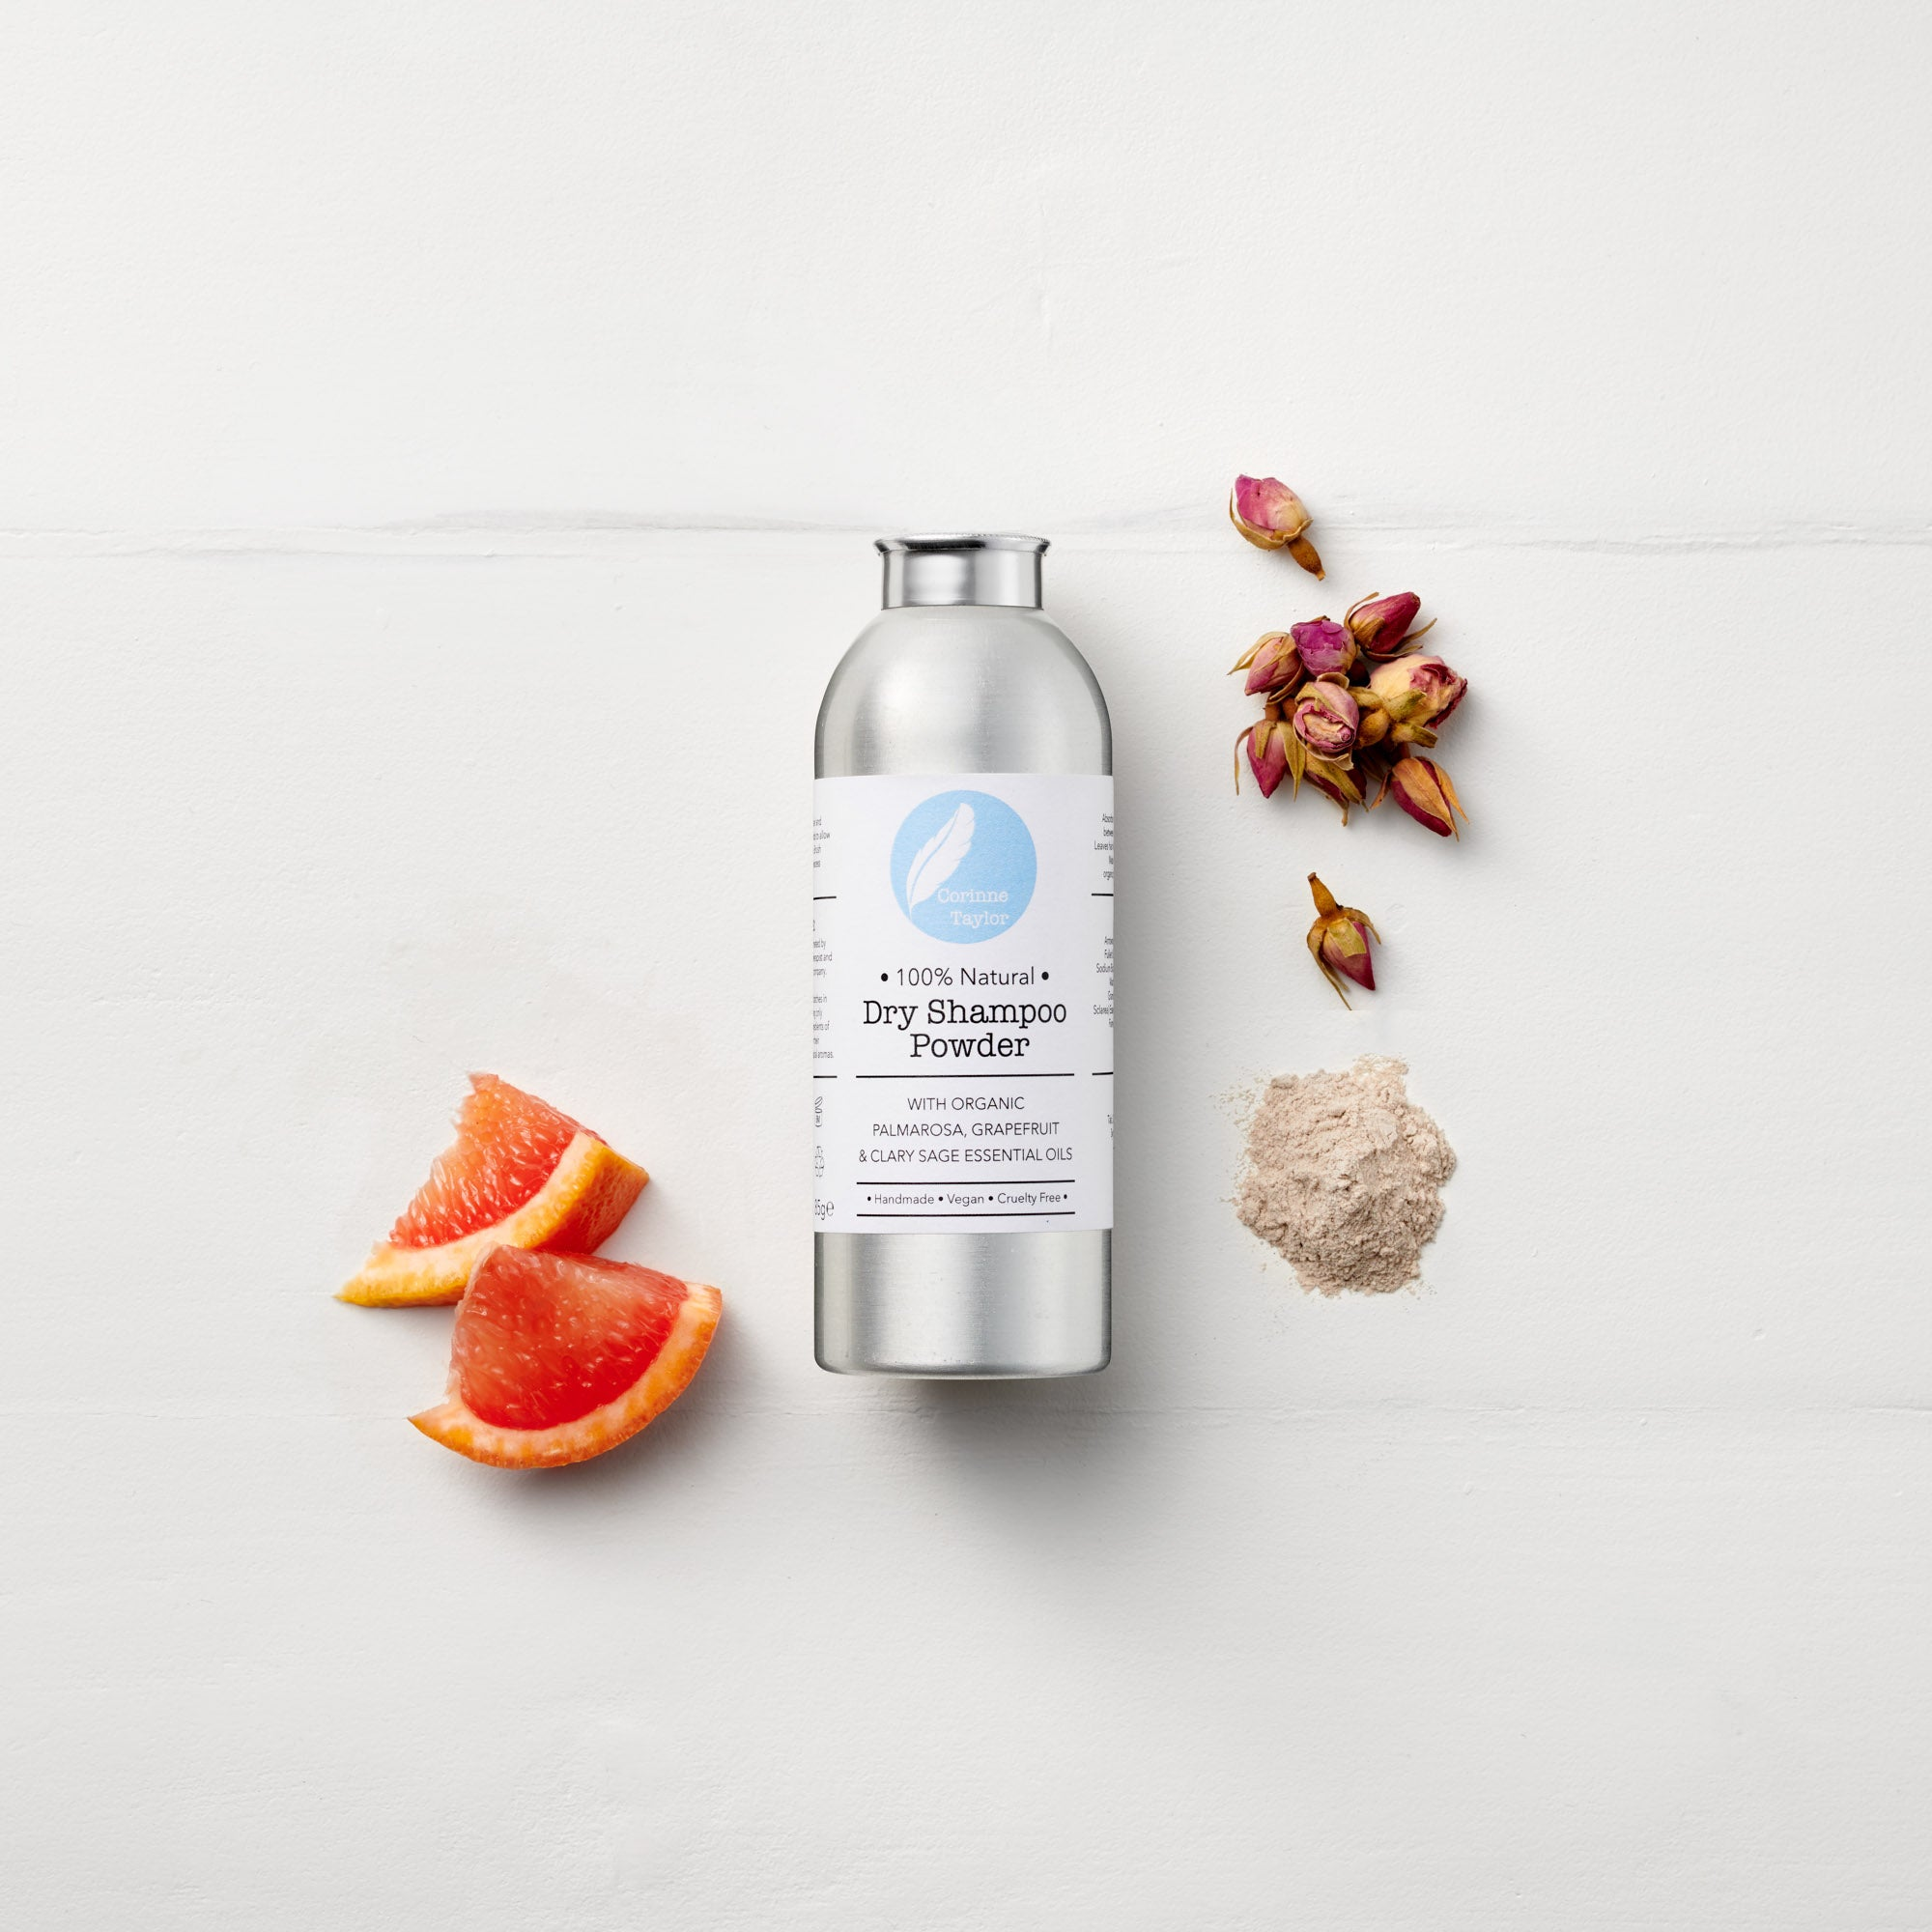 100% natural, certified cruelty free and vegan Dry Shampoo Powder by Corinne Taylor